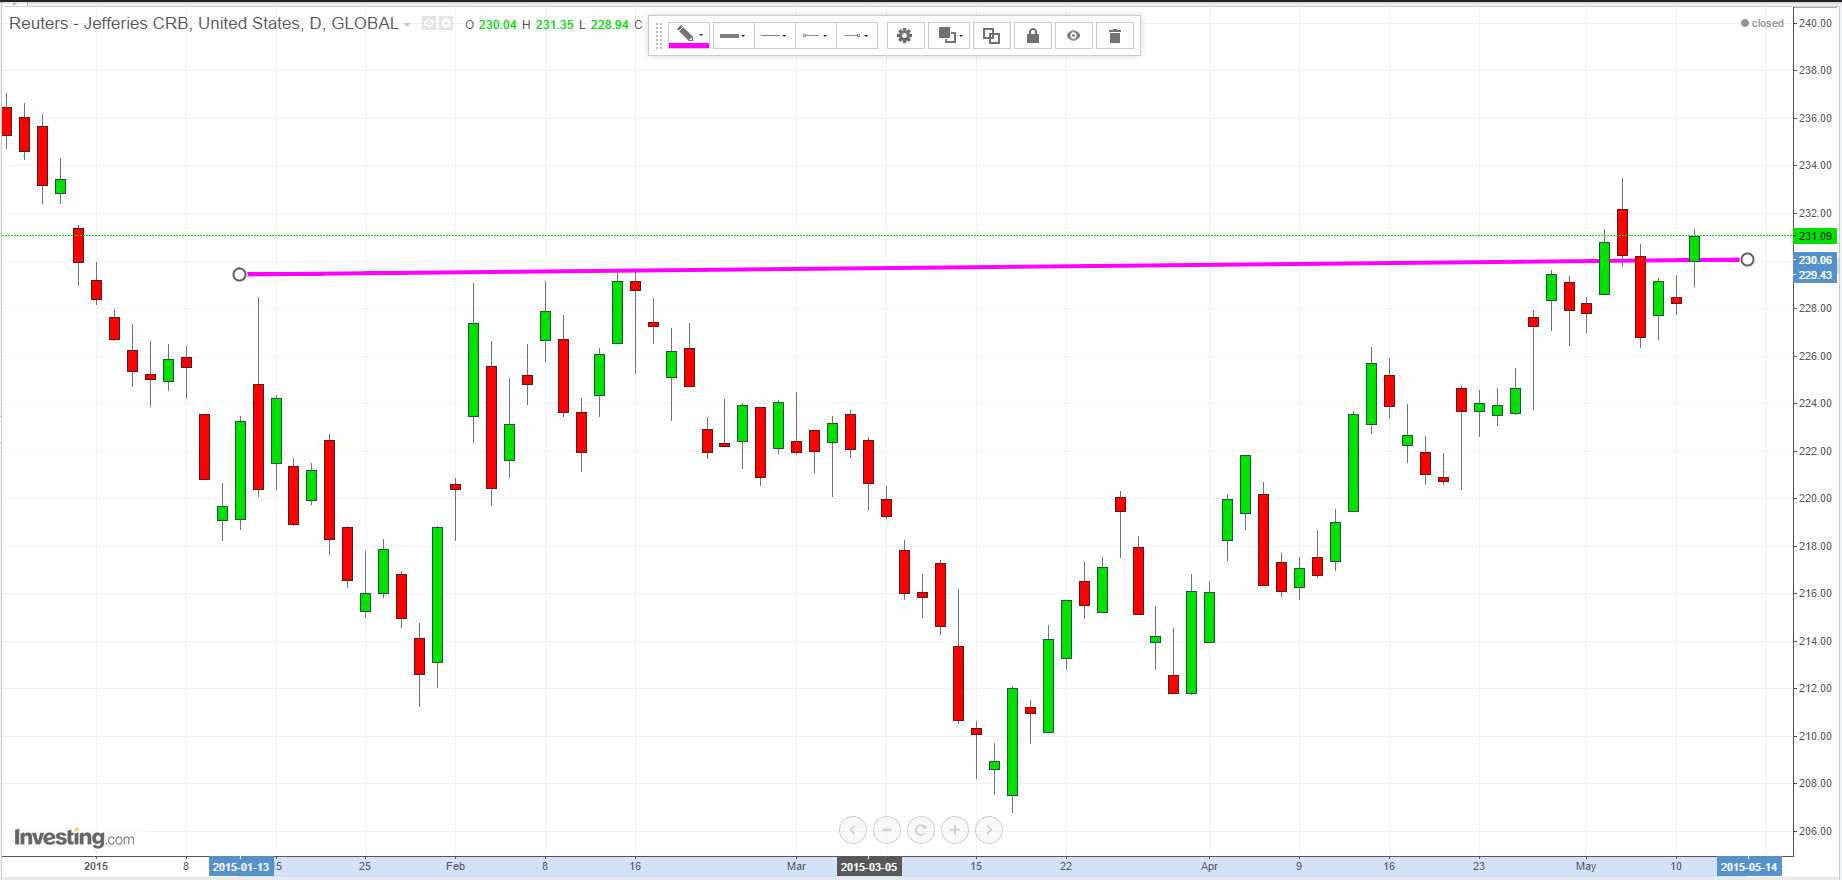 CRB index - daily chart